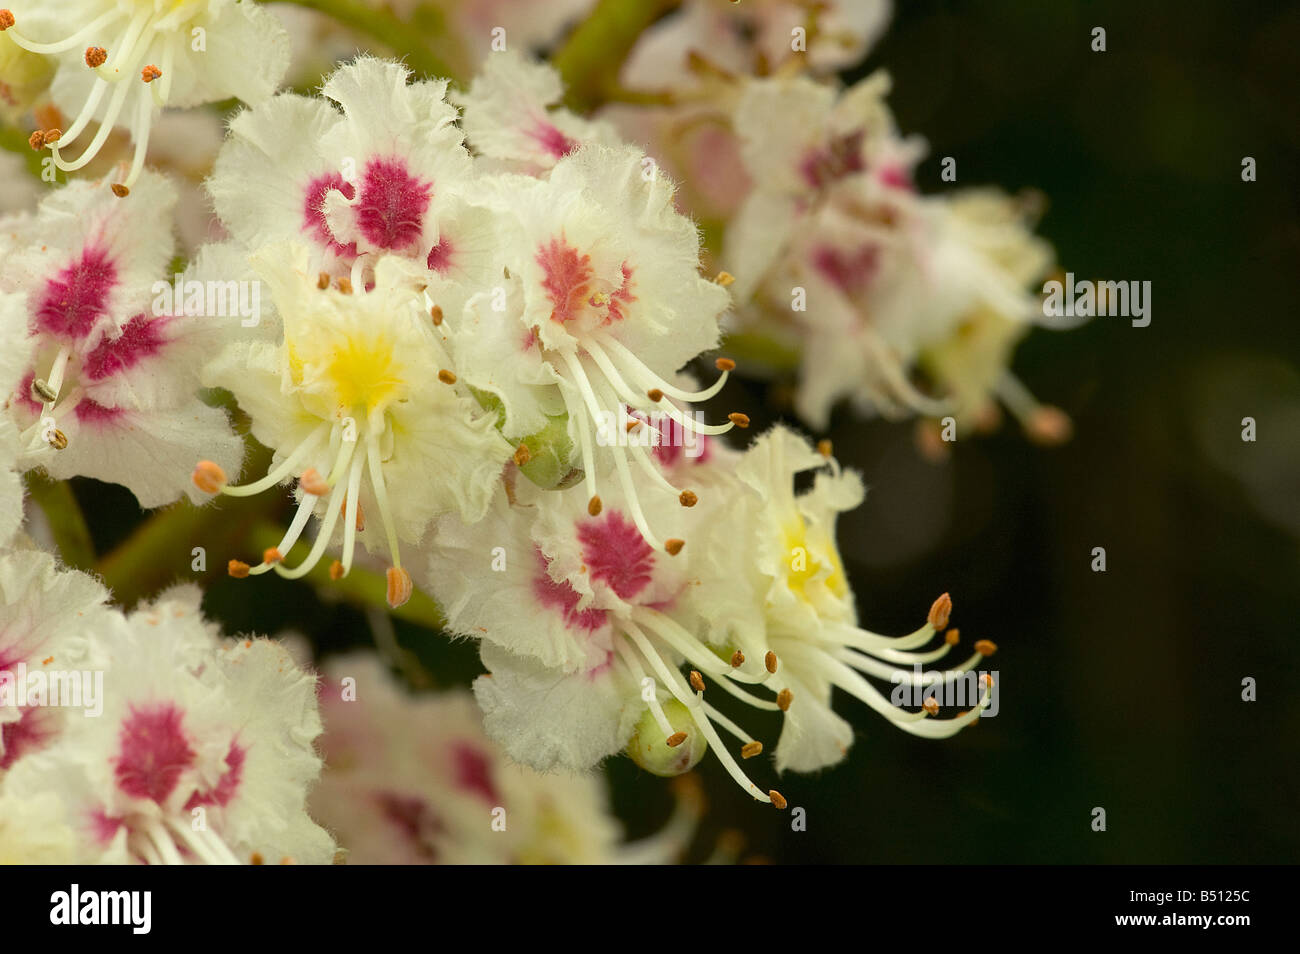 Horse chestnut flowers Aesculus hippocastanum have yellow centre at first turn red with age as pollen is exhausted - Stock Image